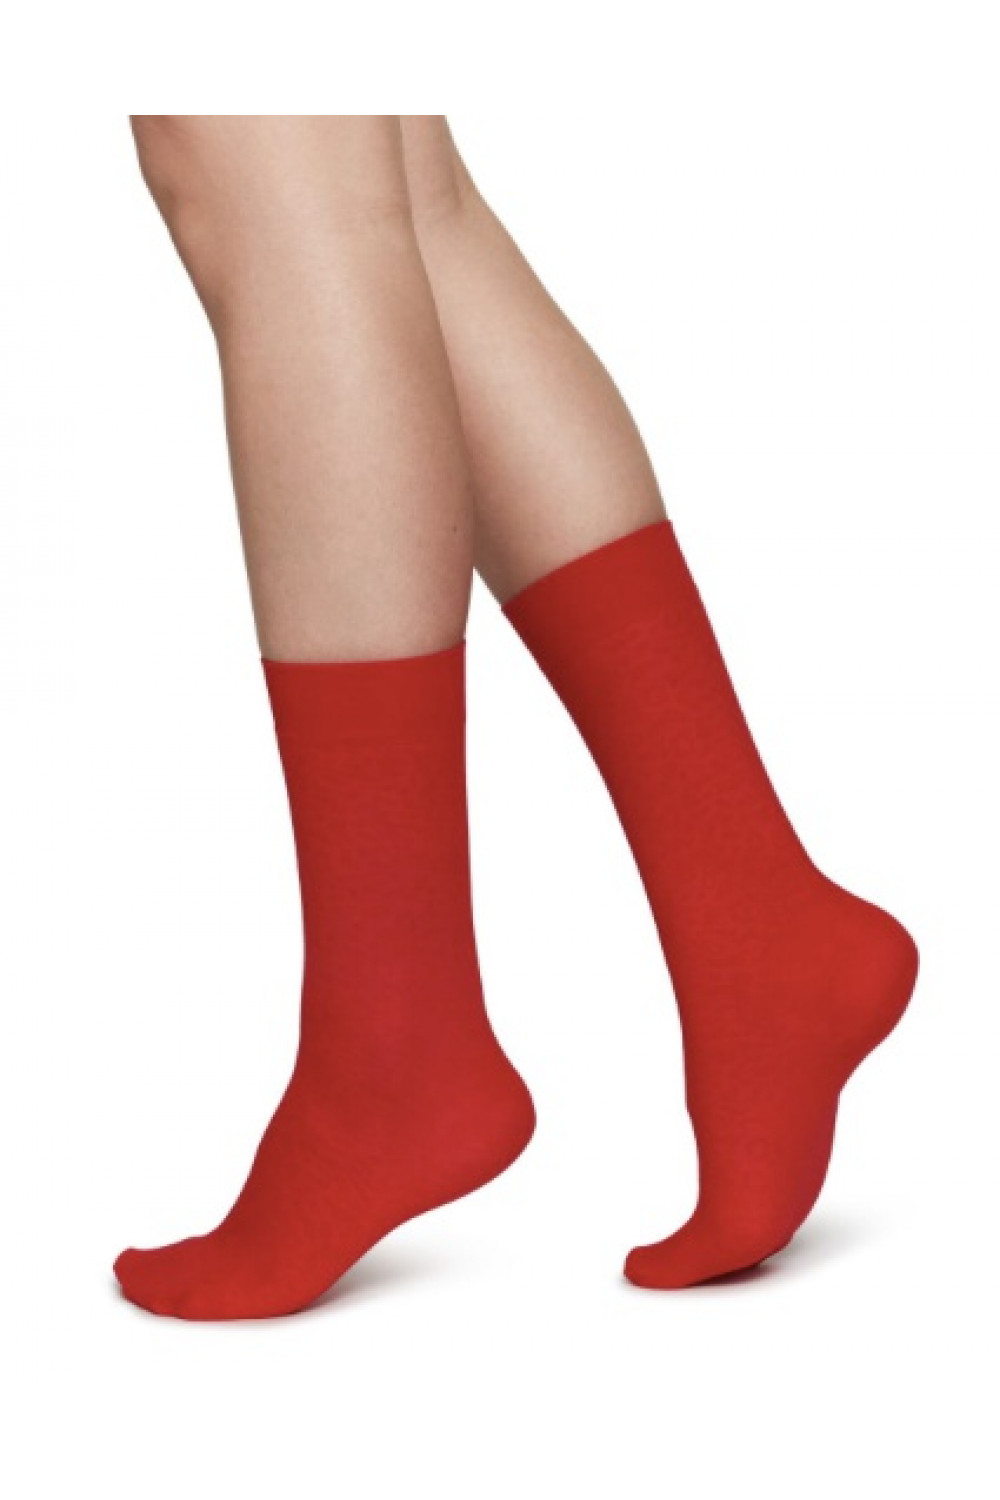 Emma Leopard sock - sharp red,  Swedish Stockings